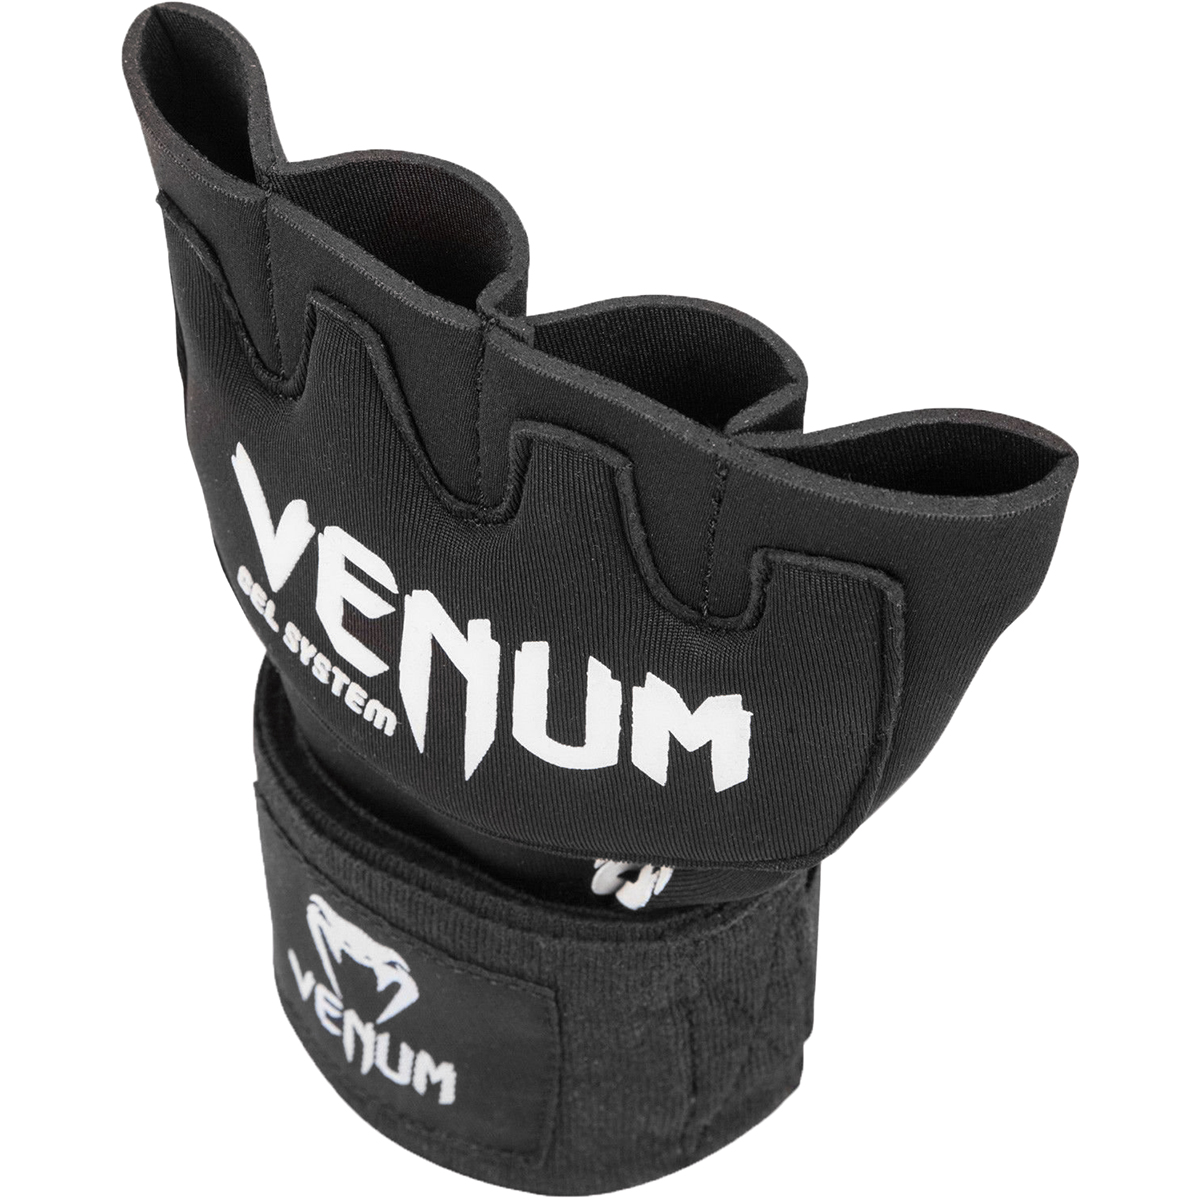 Venum-Kontact-Protective-Shock-Absorbing-Gel-MMA-Glove-Wraps thumbnail 14